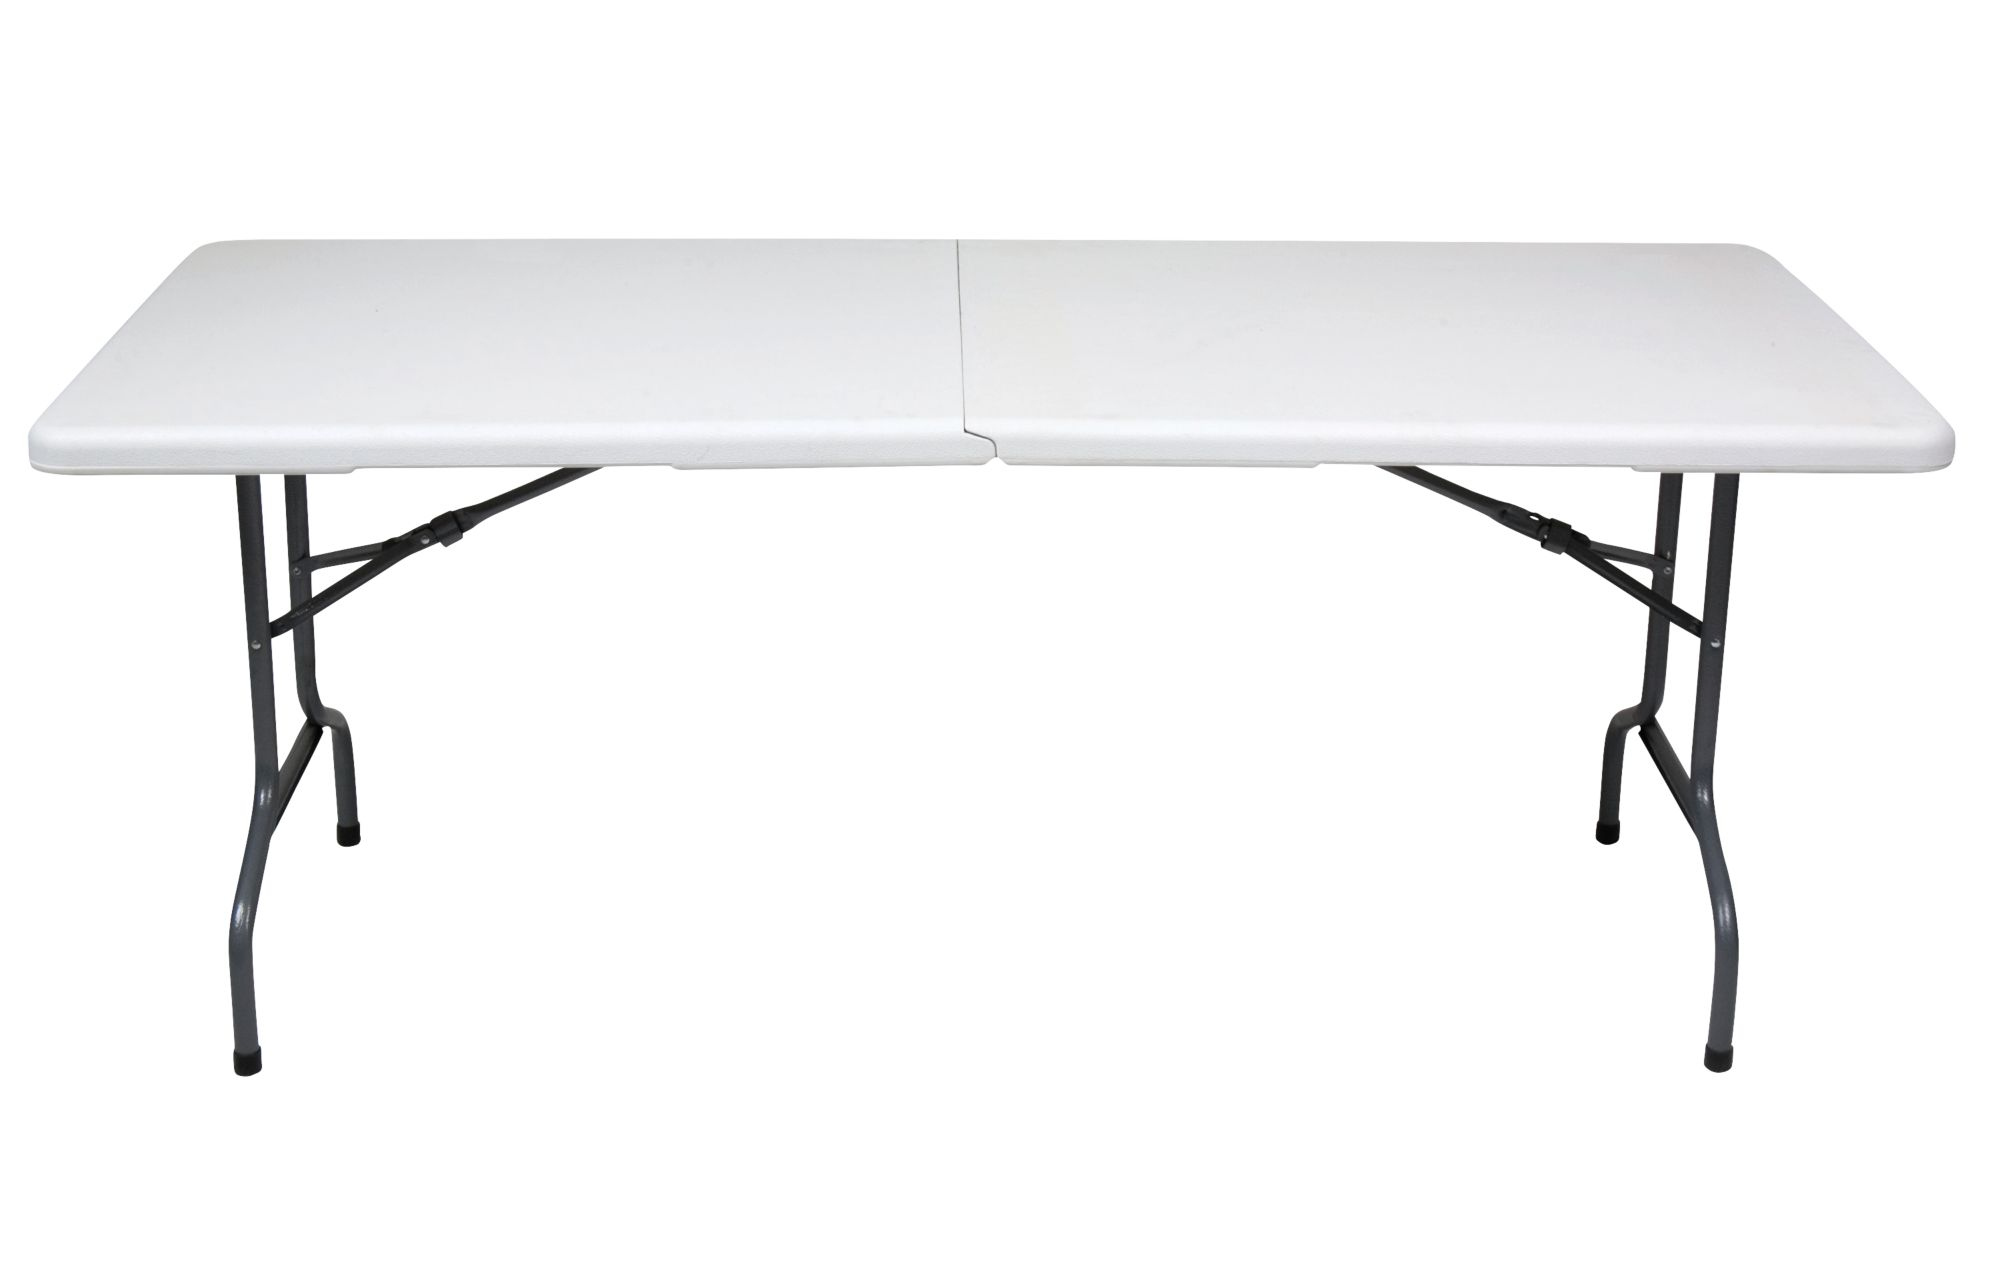 Enduro 5 Ft Center Folding Table